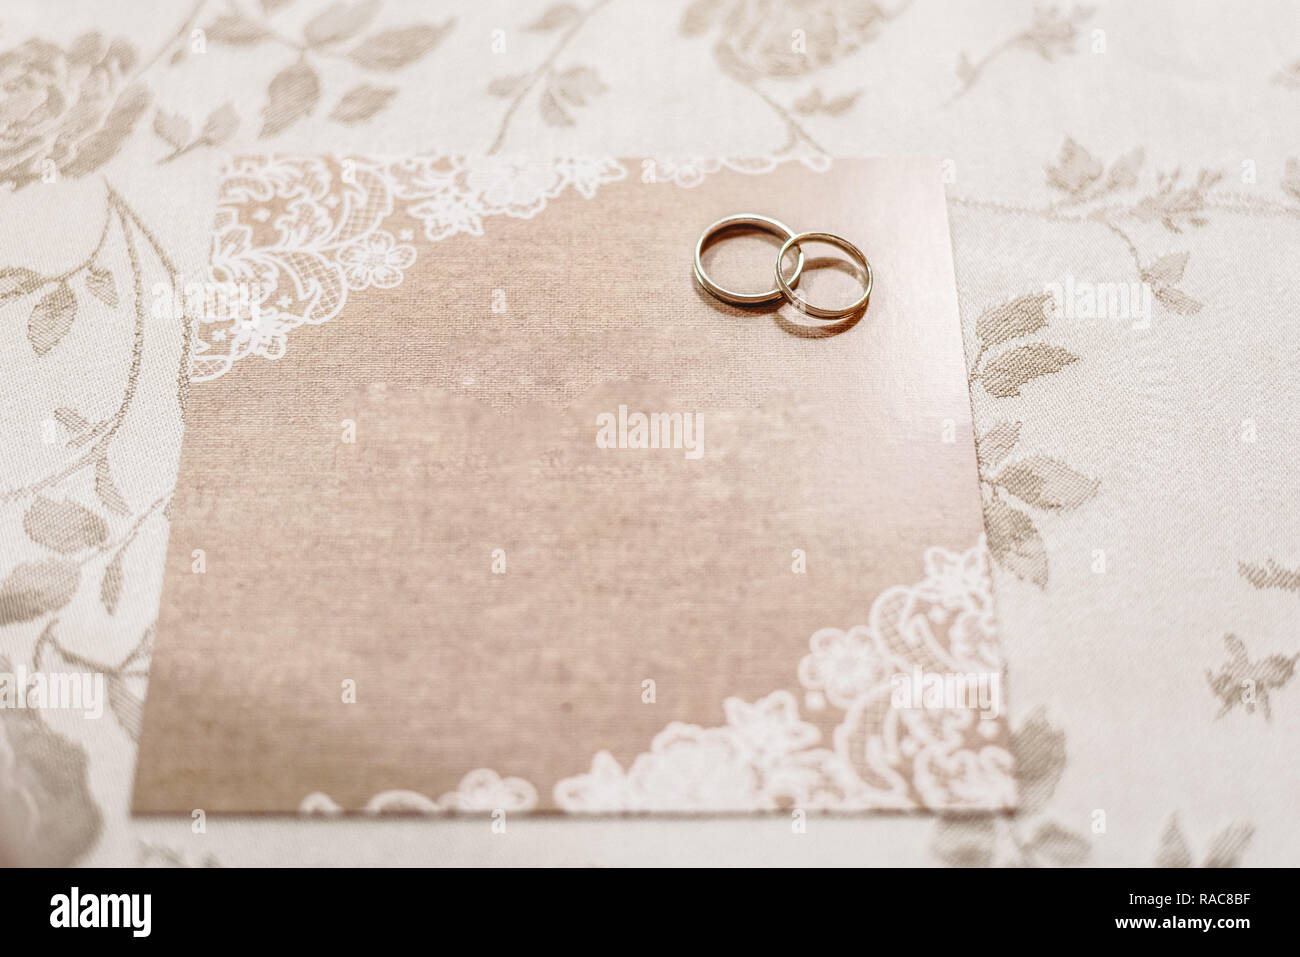 Wedding Invitation Card With Rings Empty With Space To Fill With